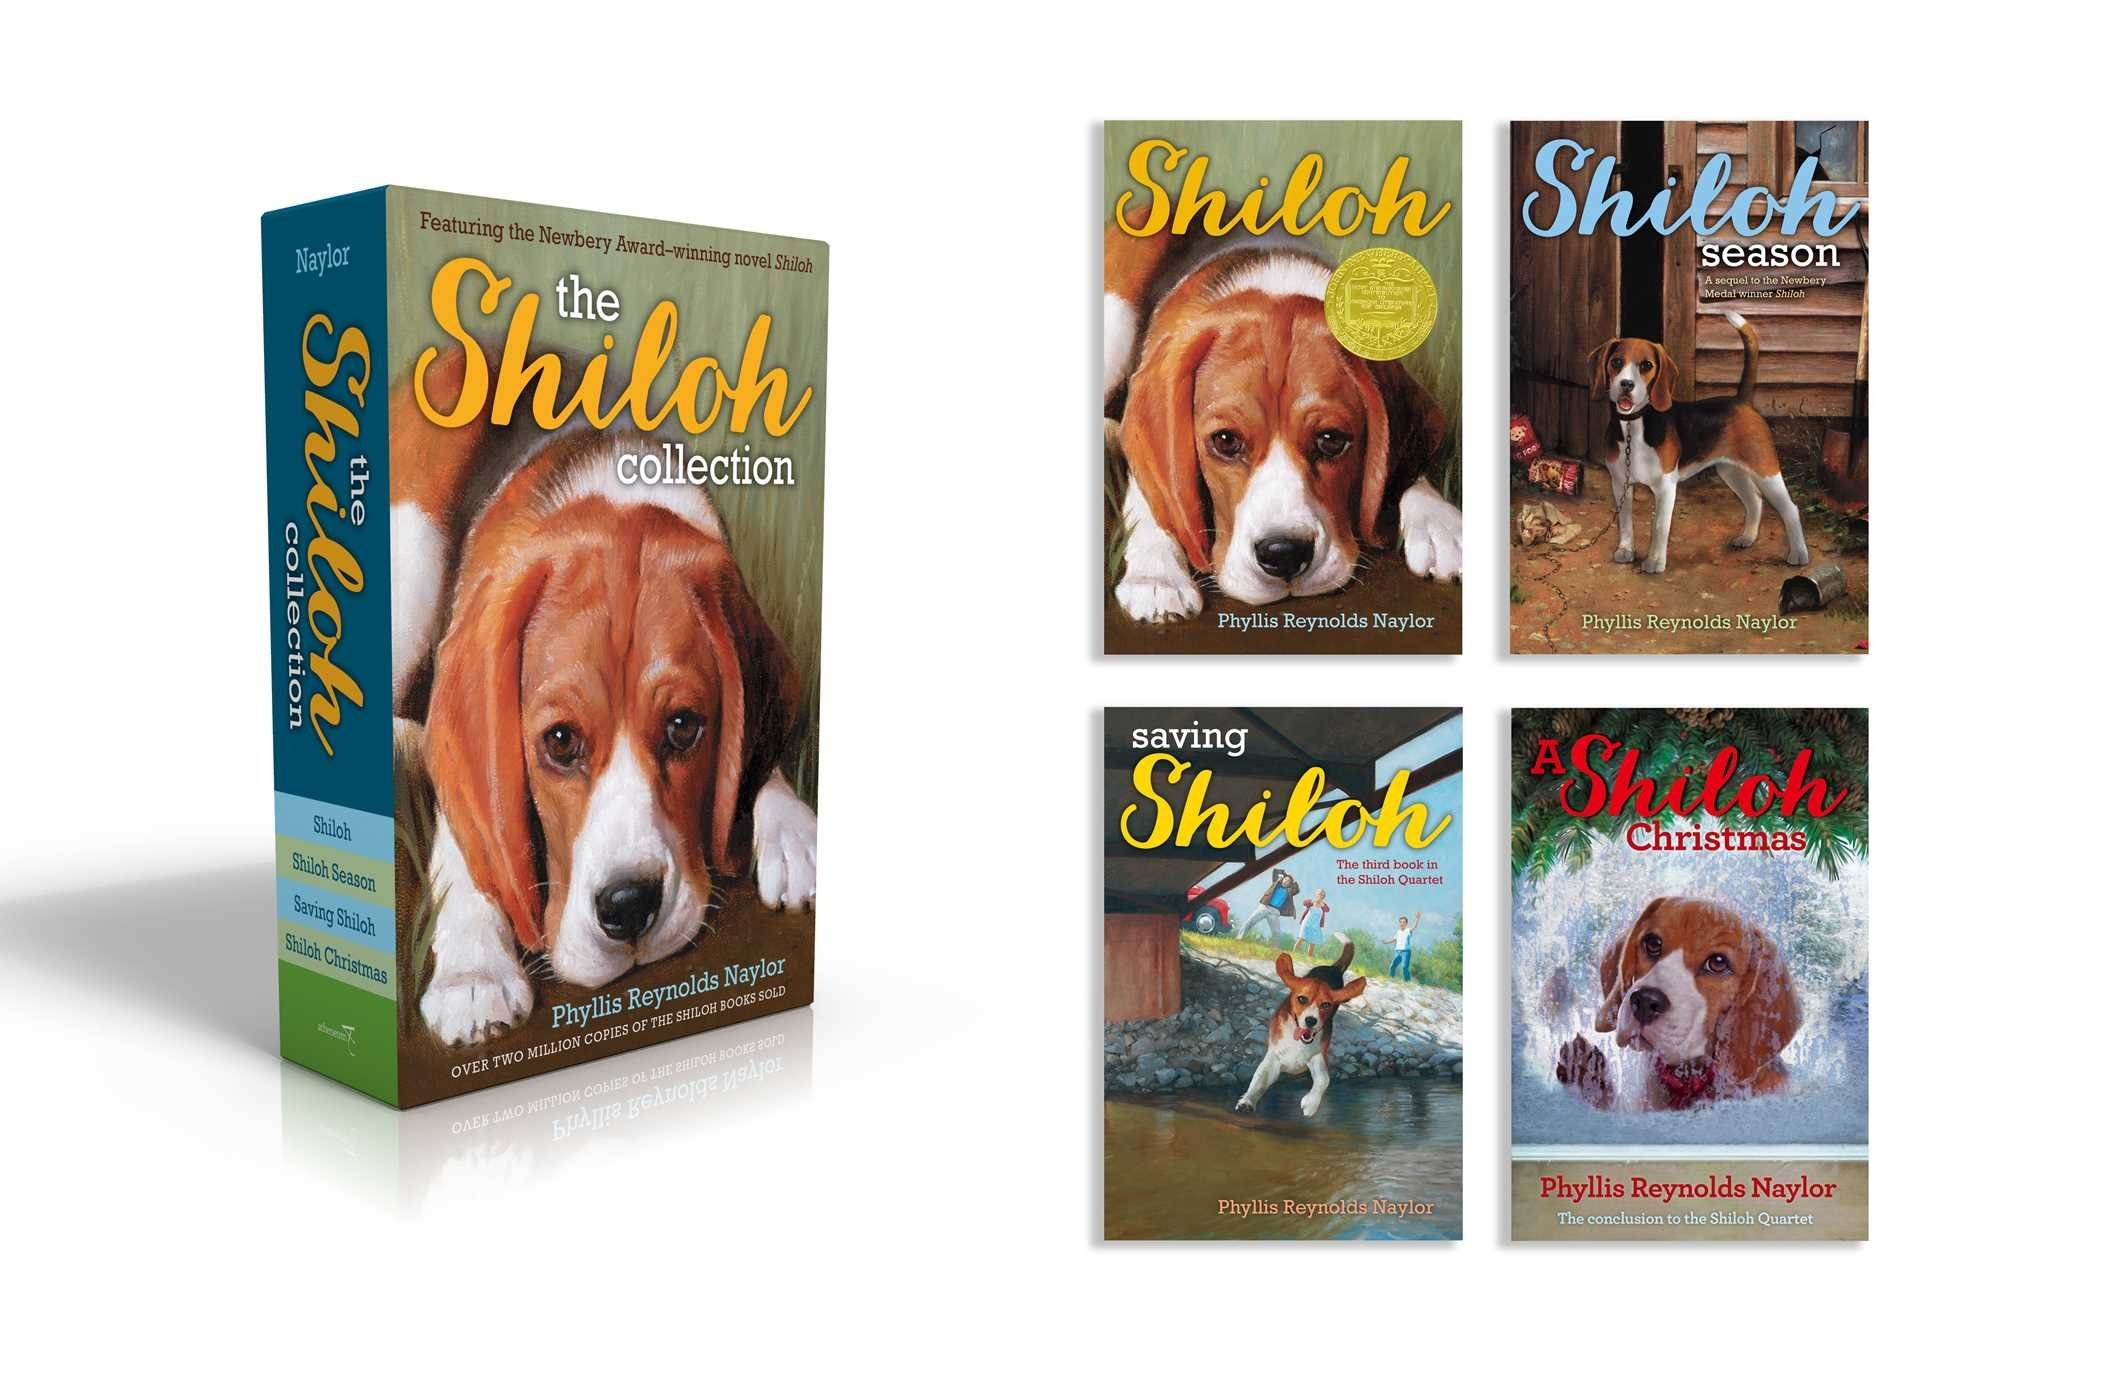 shiloh book review